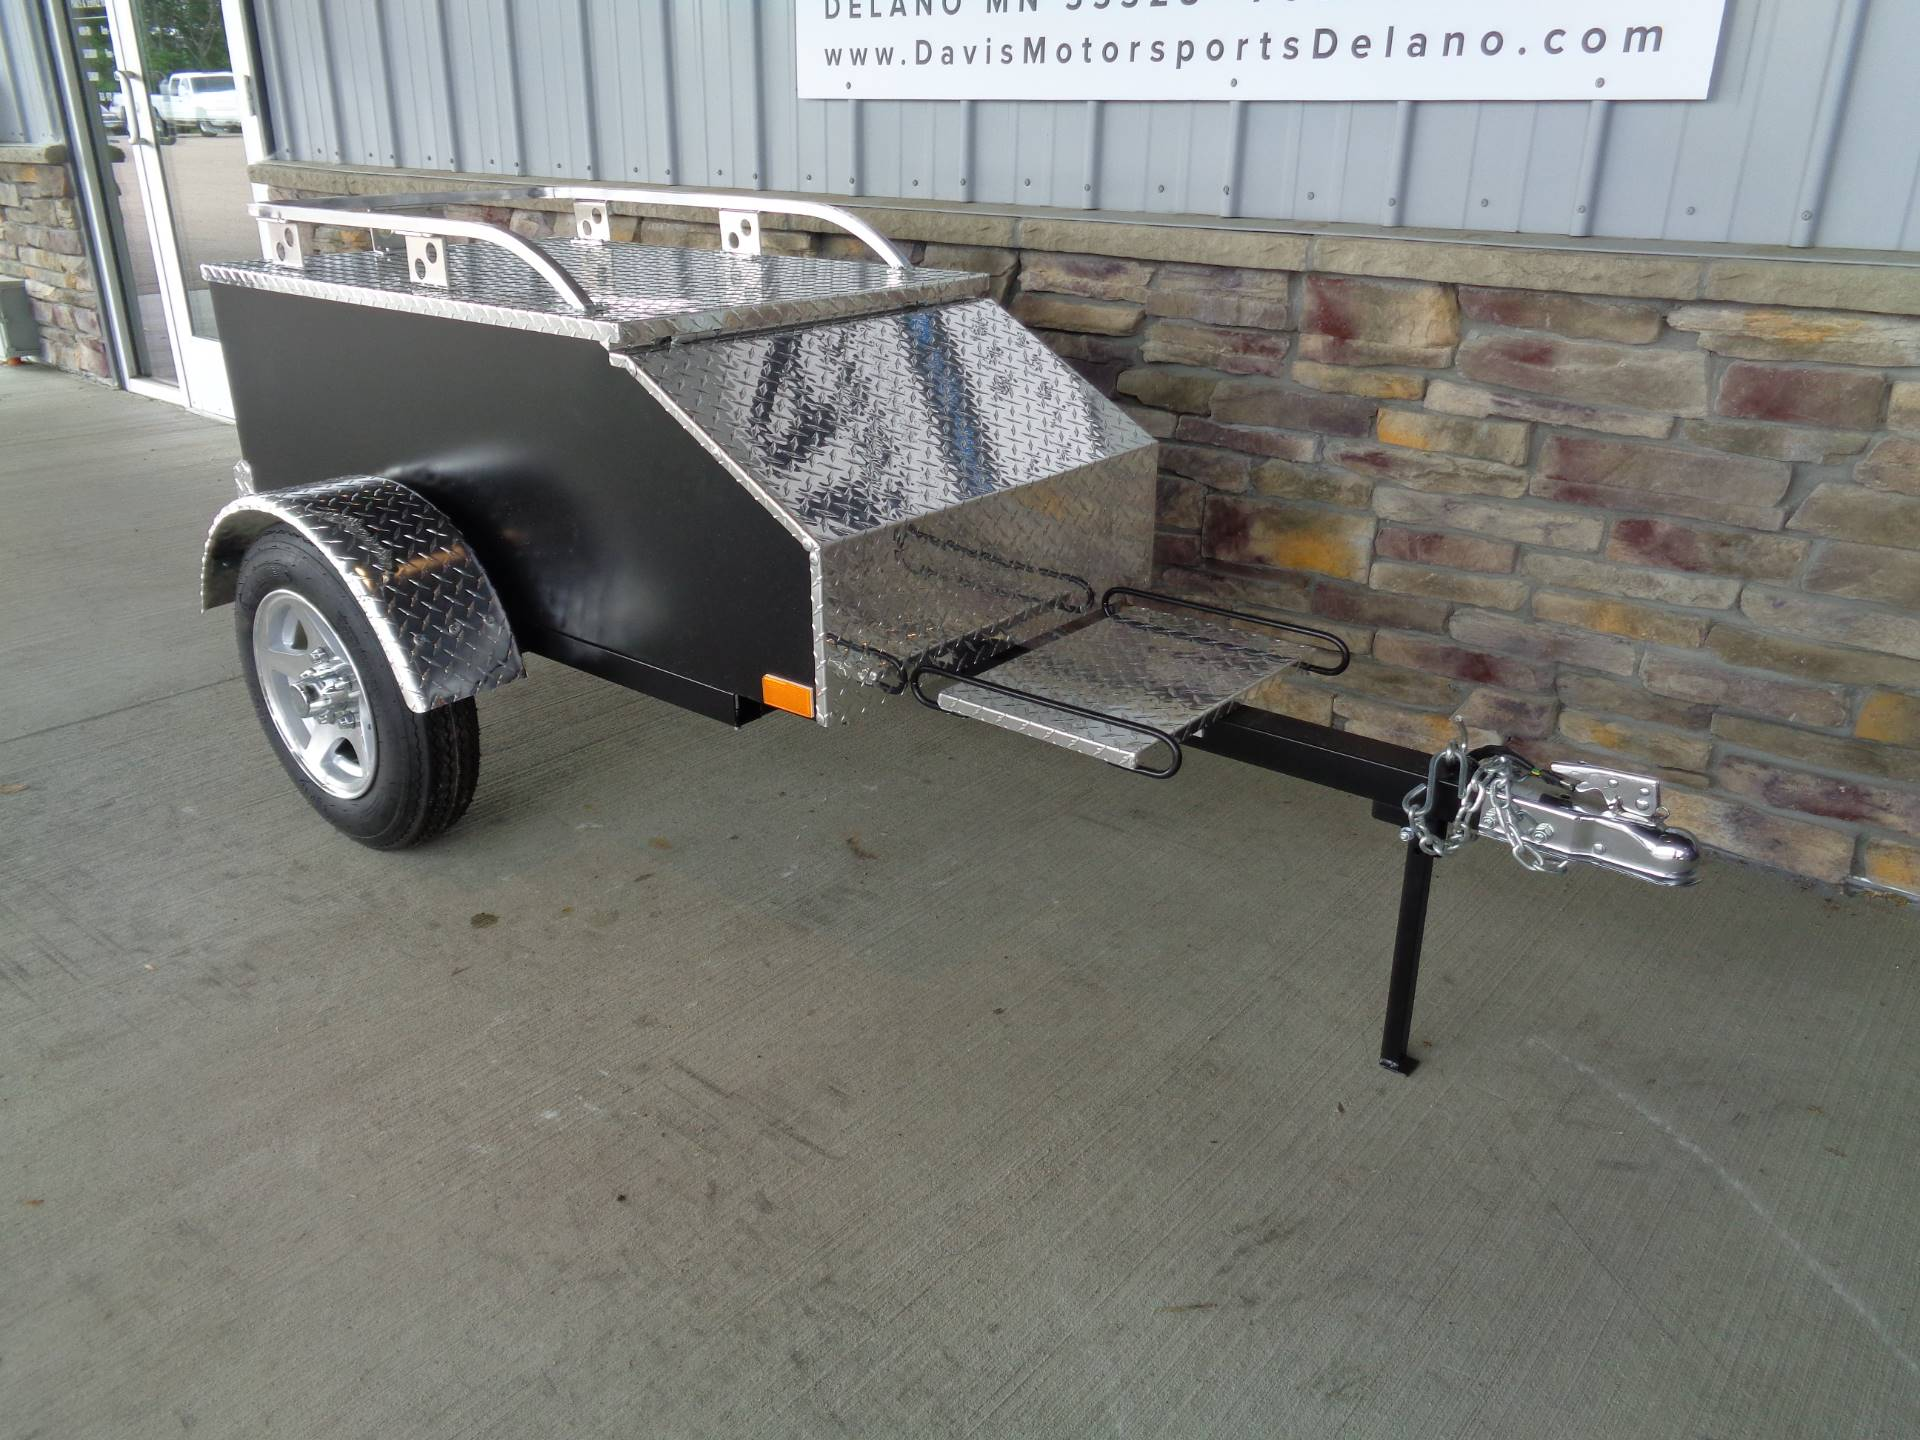 2019 MARLON AMT XL TRAILER in Delano, Minnesota